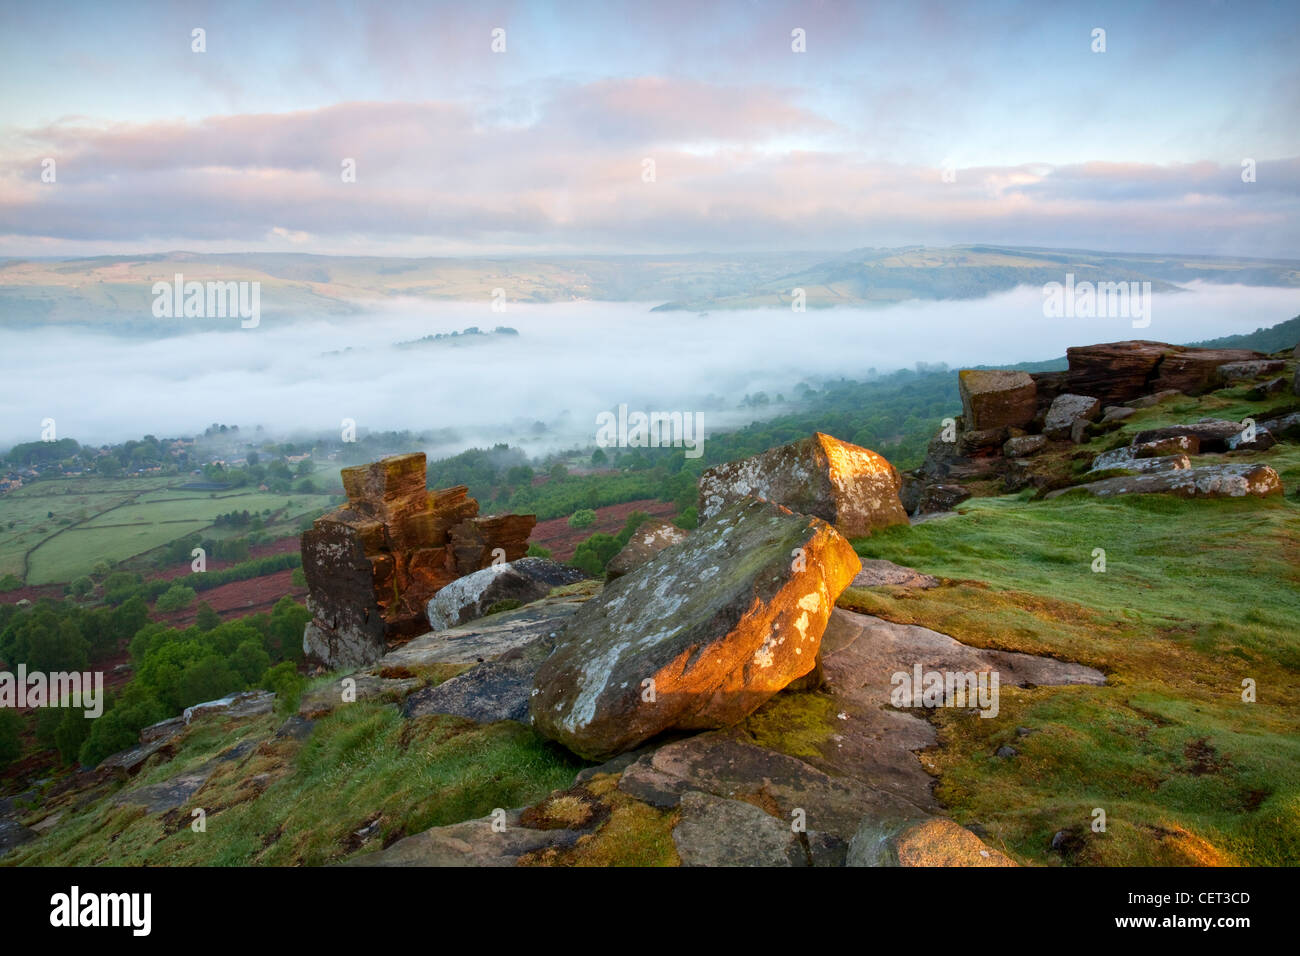 Mist over the village of Calver viewed at first light from Curbar Edge in the Peak District National Park. - Stock Image